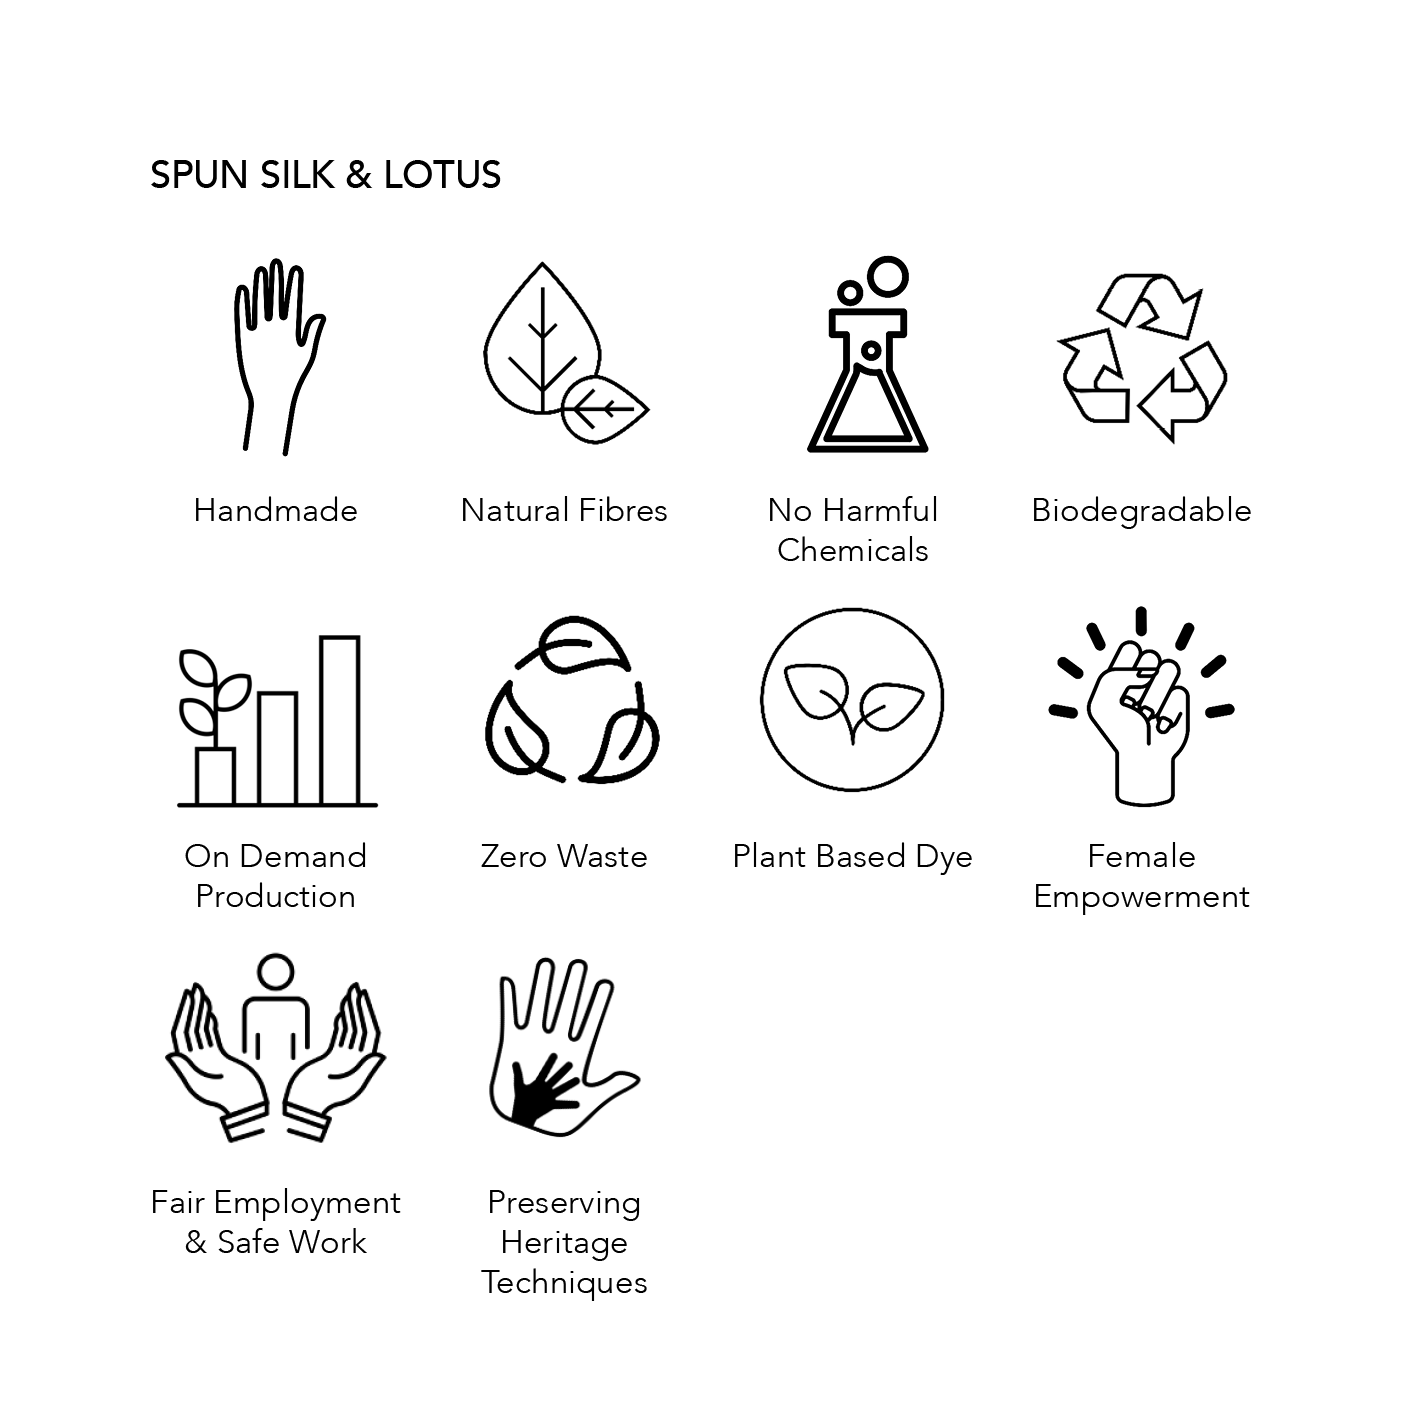 Spun Silk & Lotus Fabric Sustainability Credentials; handmade, natural fibres, no harmful chemicals used, biodegradable, on demand production, zero waste, plant based dye, female empowerment, fair employment and safe work and preserving heritage techniques.